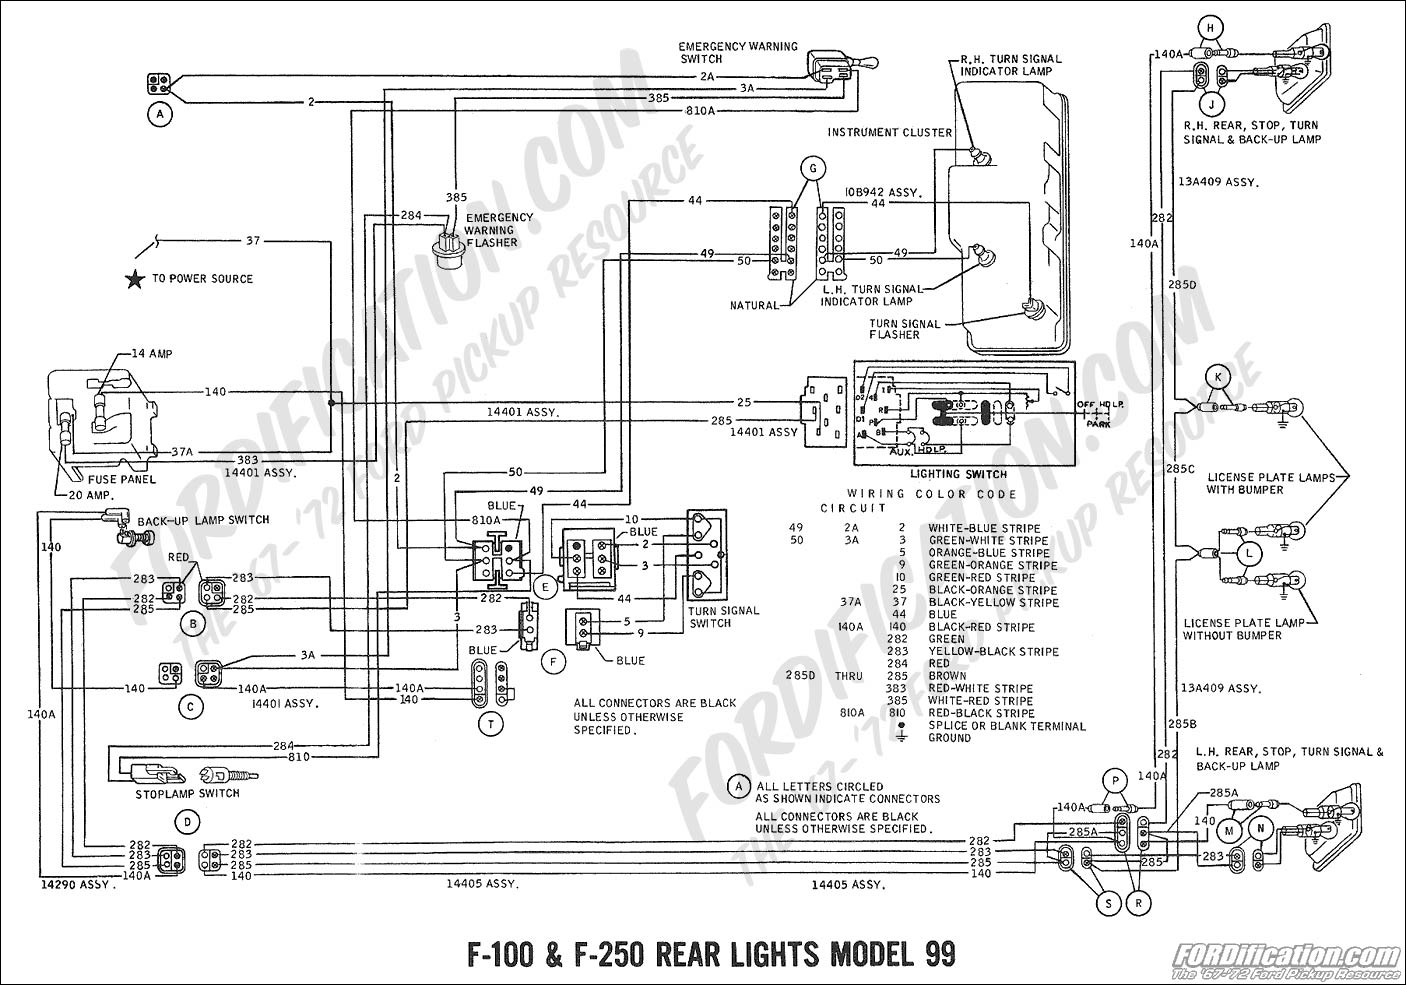 toyota camry alternator diagram with Viewtopic on Toyota Knock Sensor Location 2008 Tundra 5 7 furthermore 2000 Toyota Corolla Ac Fuse Box besides 2000 Toyota Land Cruiser Prado Electrical Wiring Diagram moreover T9089811 Need belt routing 2006 toyota ta a eng likewise Discussion T26285 ds571071.